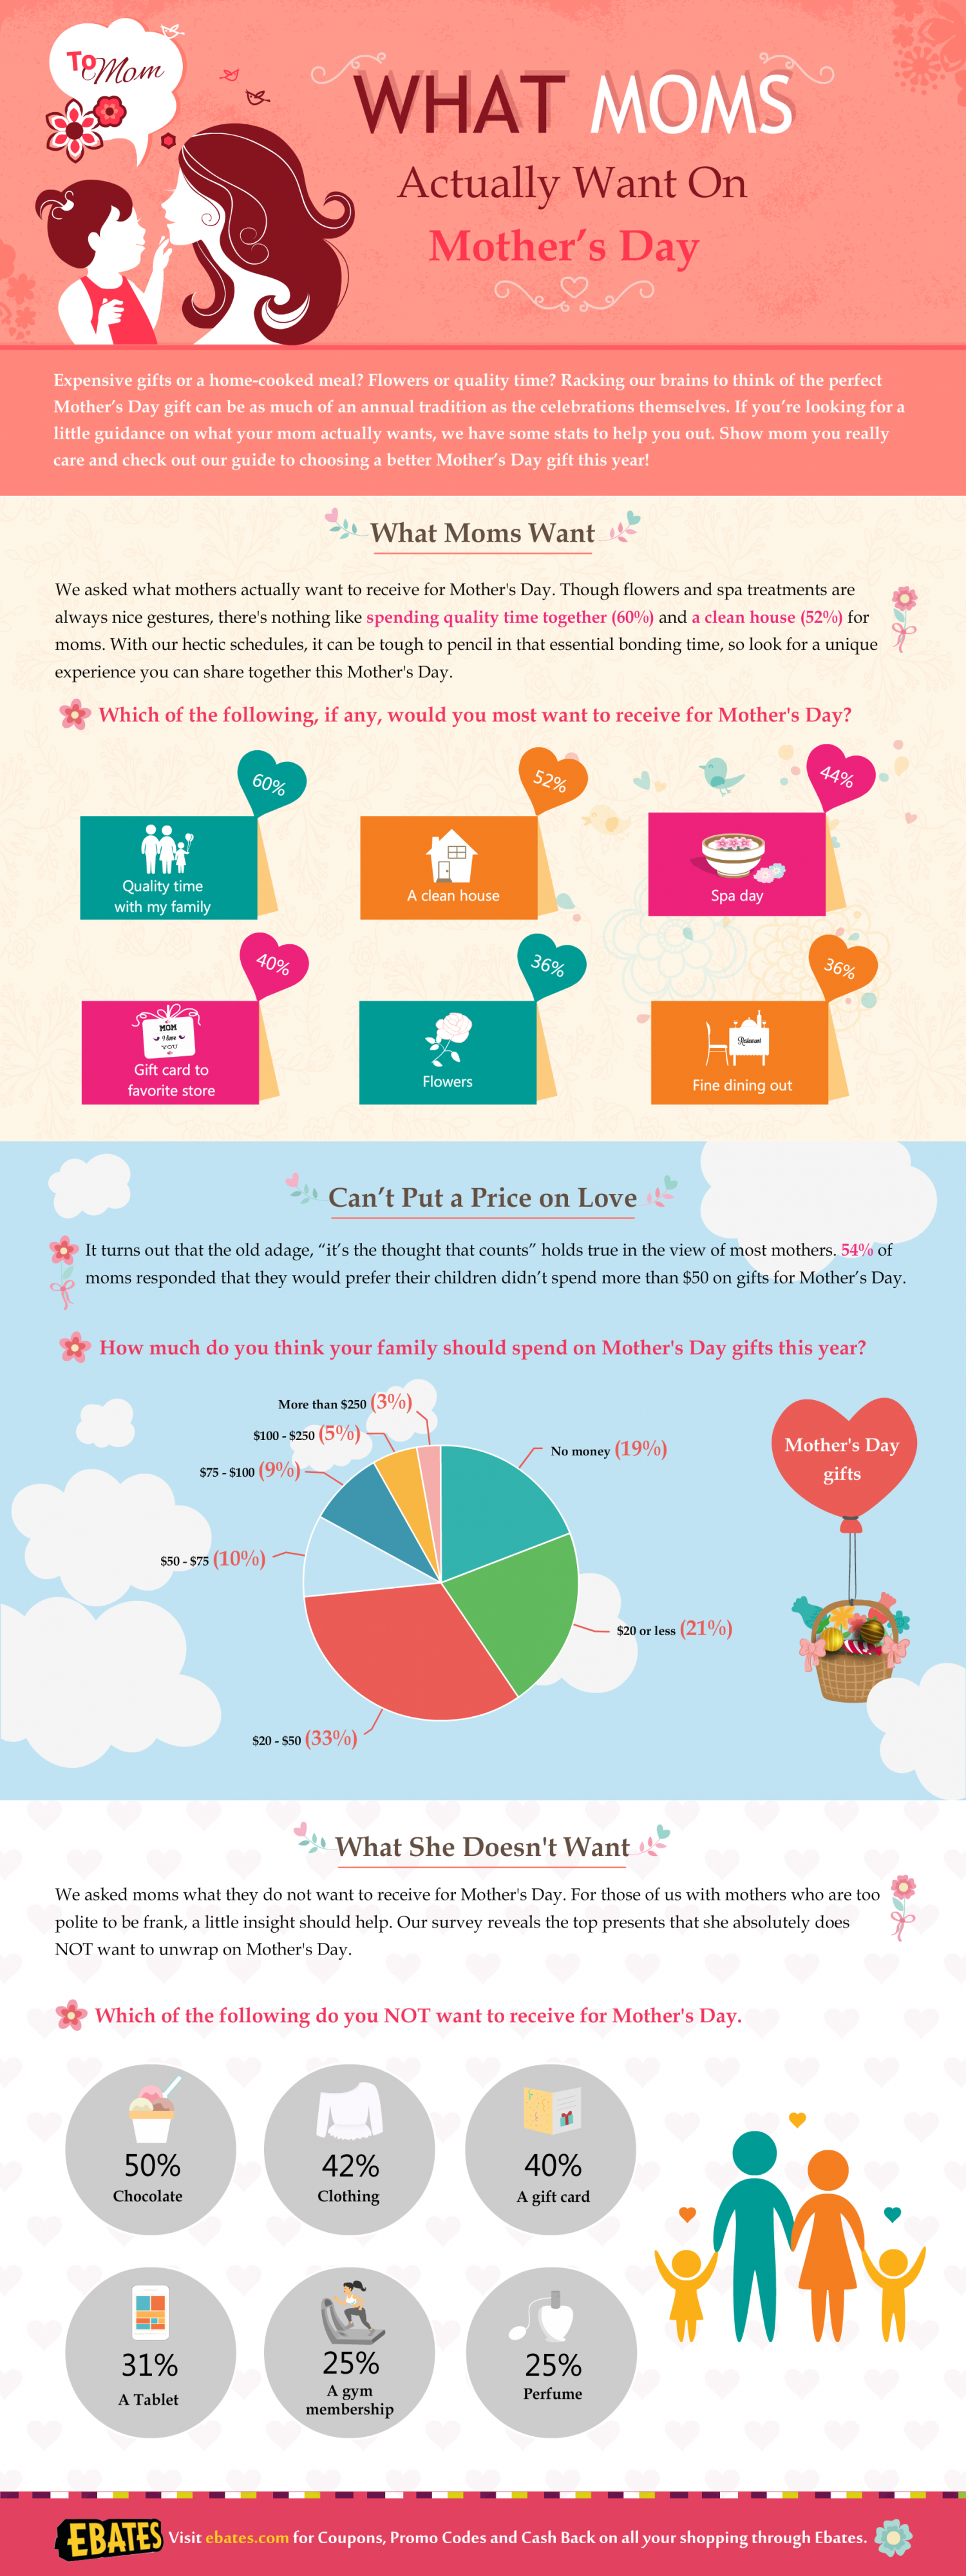 What Moms Actually Want on Mother's Day Infographic